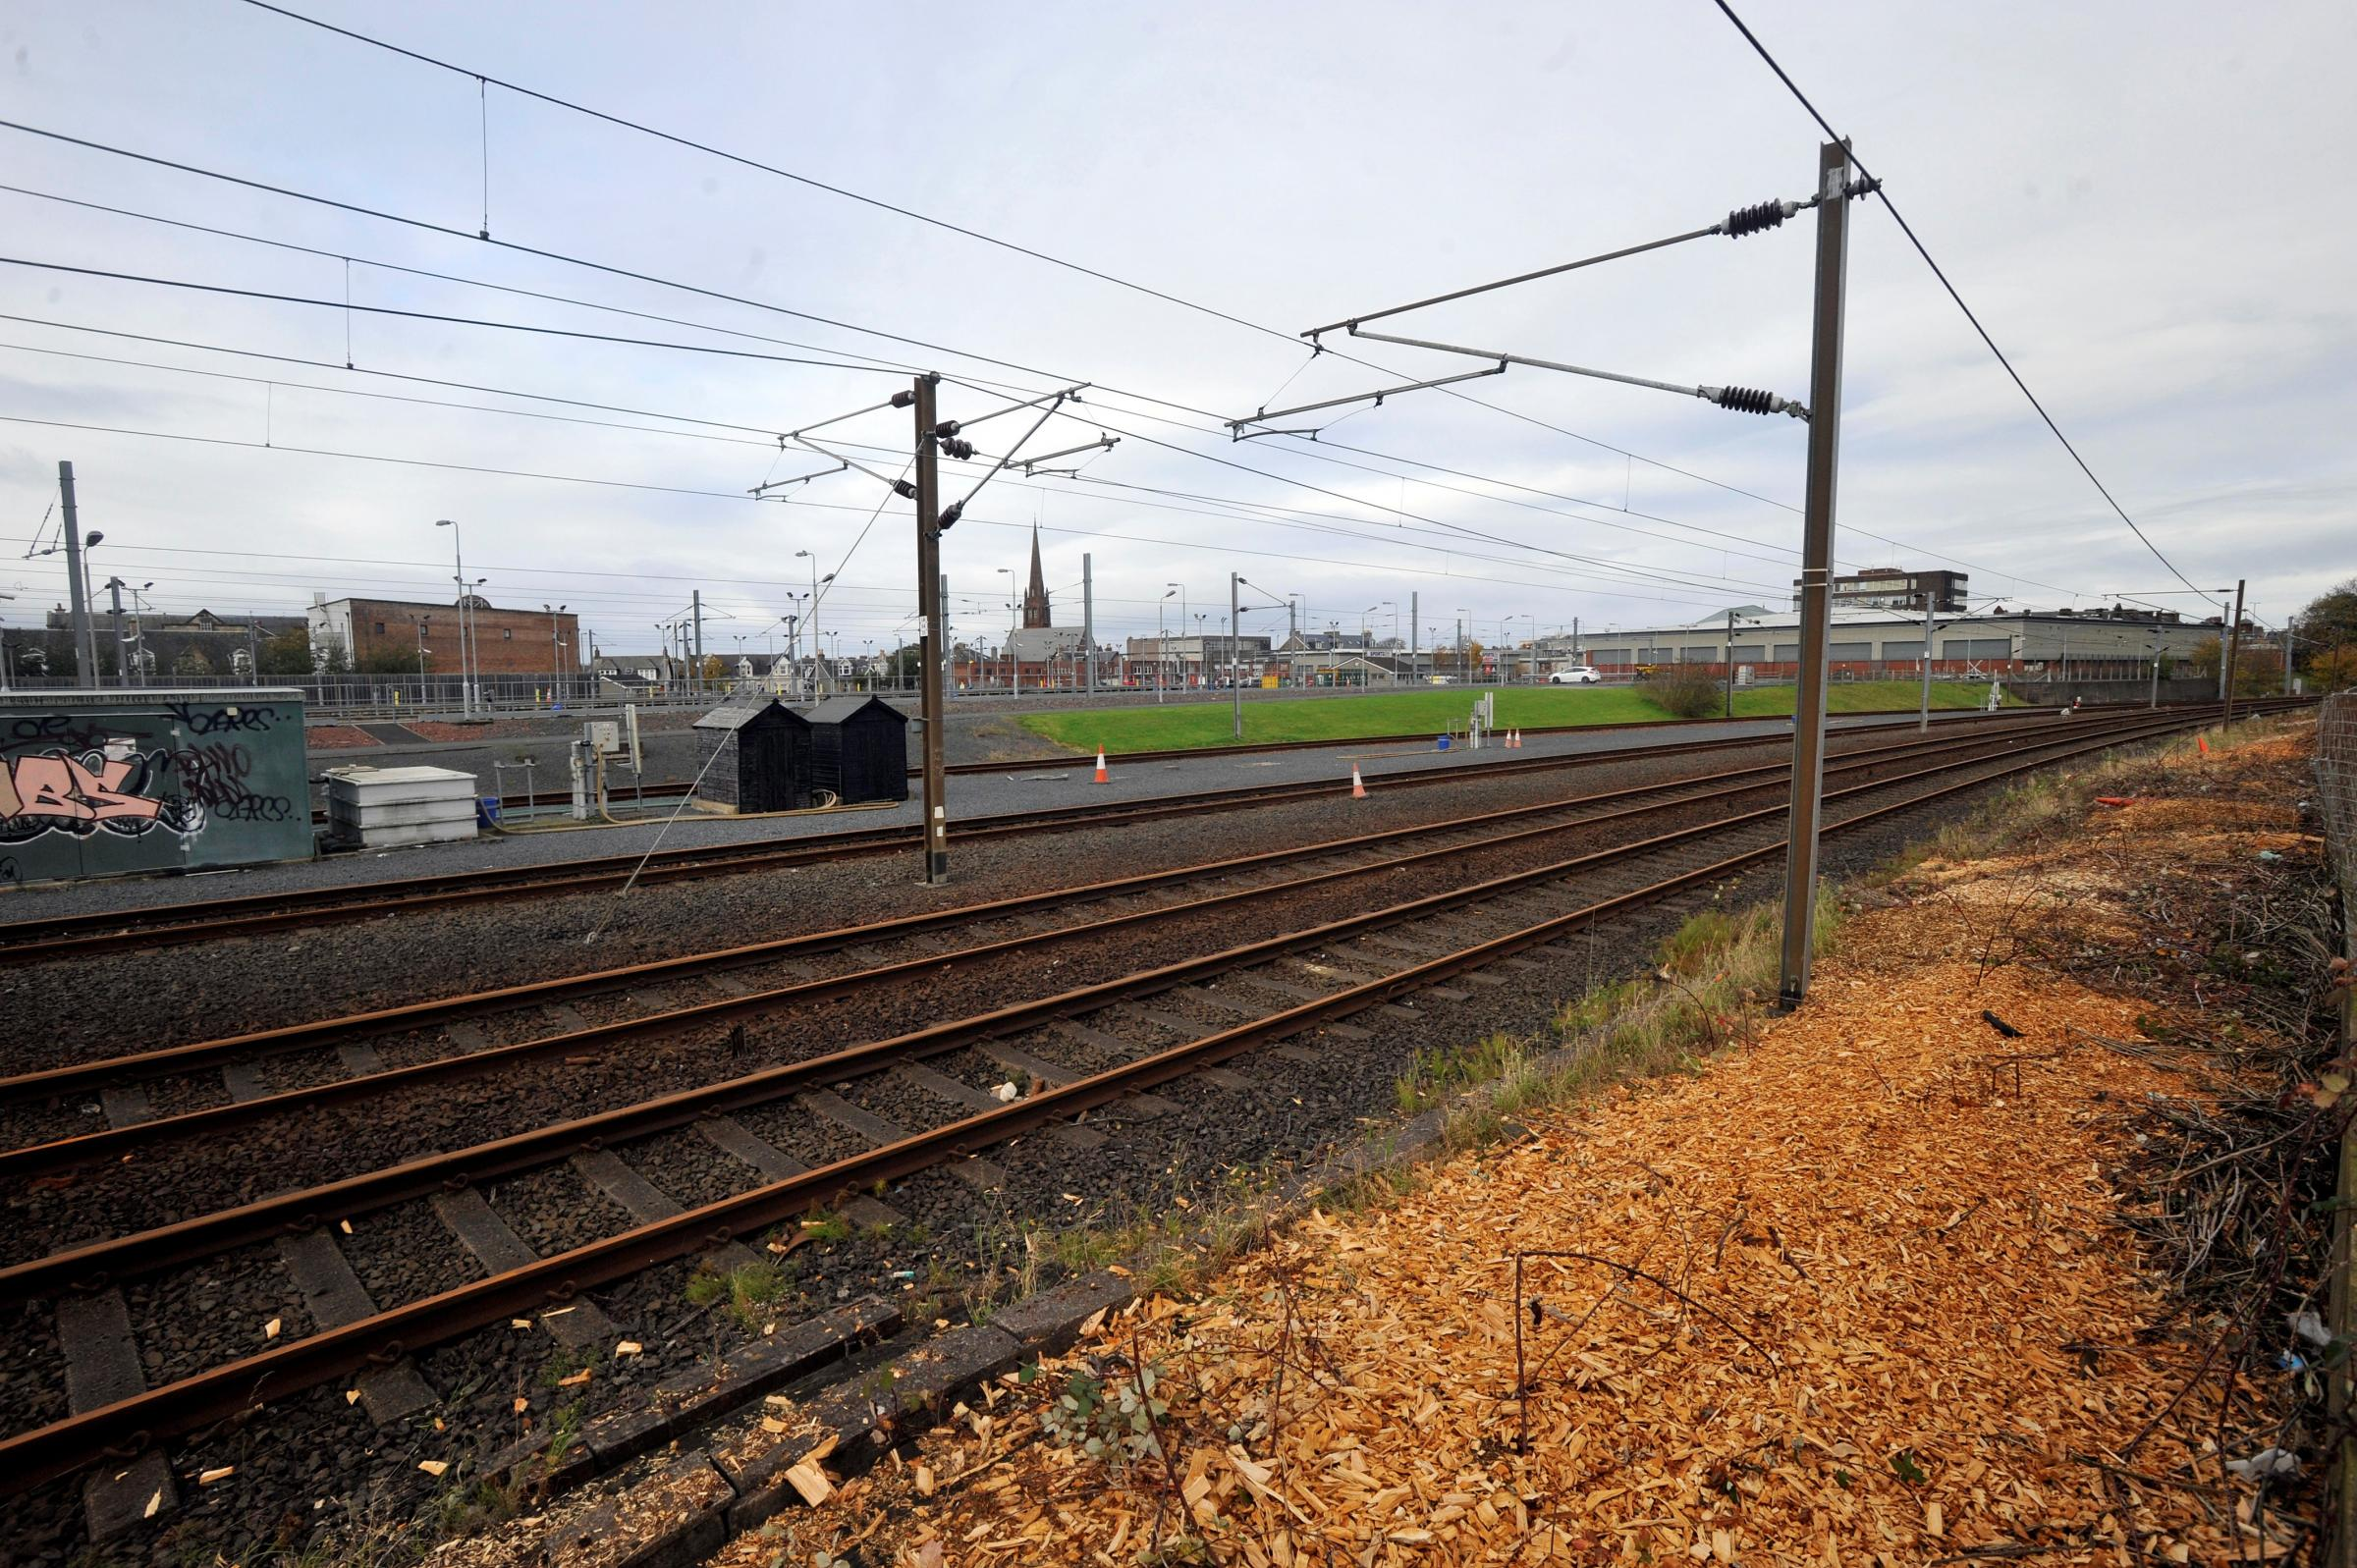 Scotrail has ruled out Townhead Depot being introduced any time soon